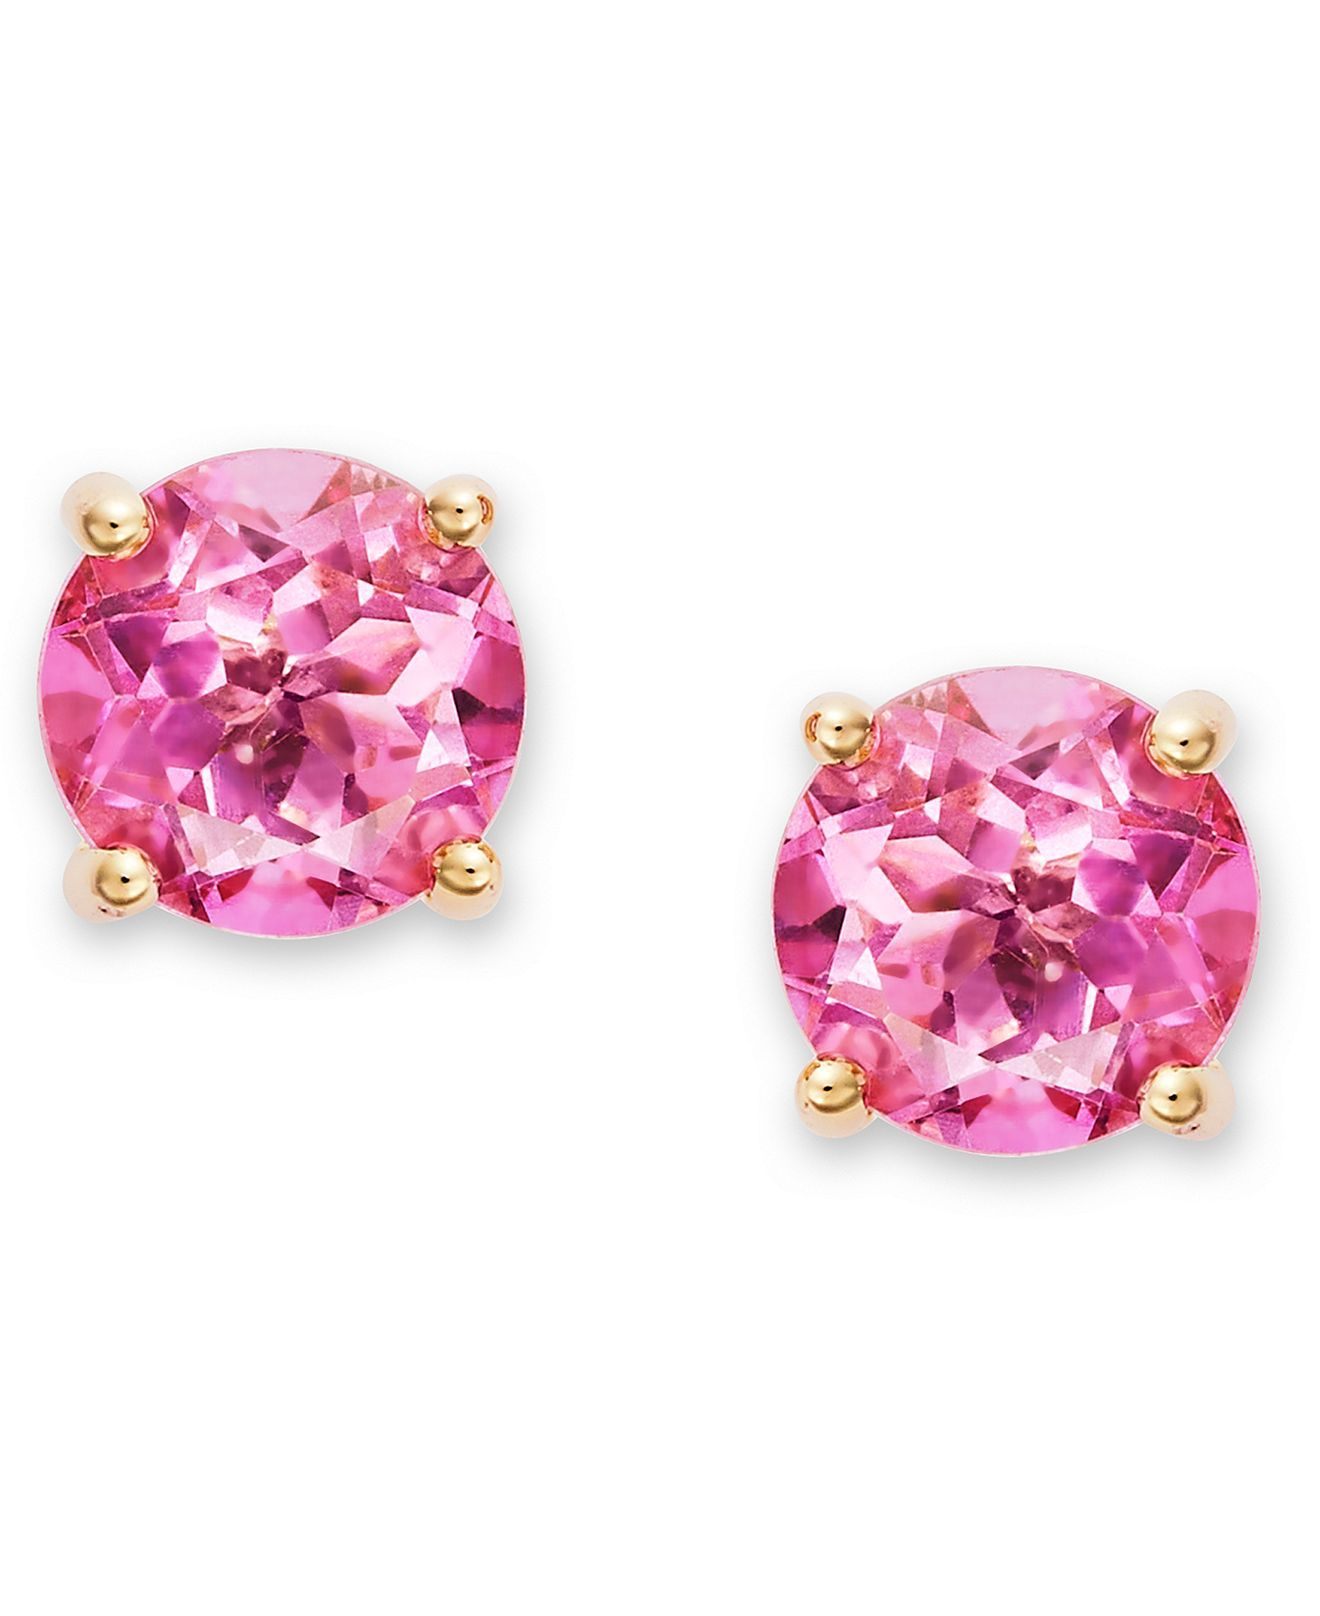 0367b67de Victoria Townsend 18k Gold over Sterling Silver Earrings, Pink Topaz Stud  Earrings (3 ct. t.w.) - Necklaces - Jewelry & Watches - Macy's